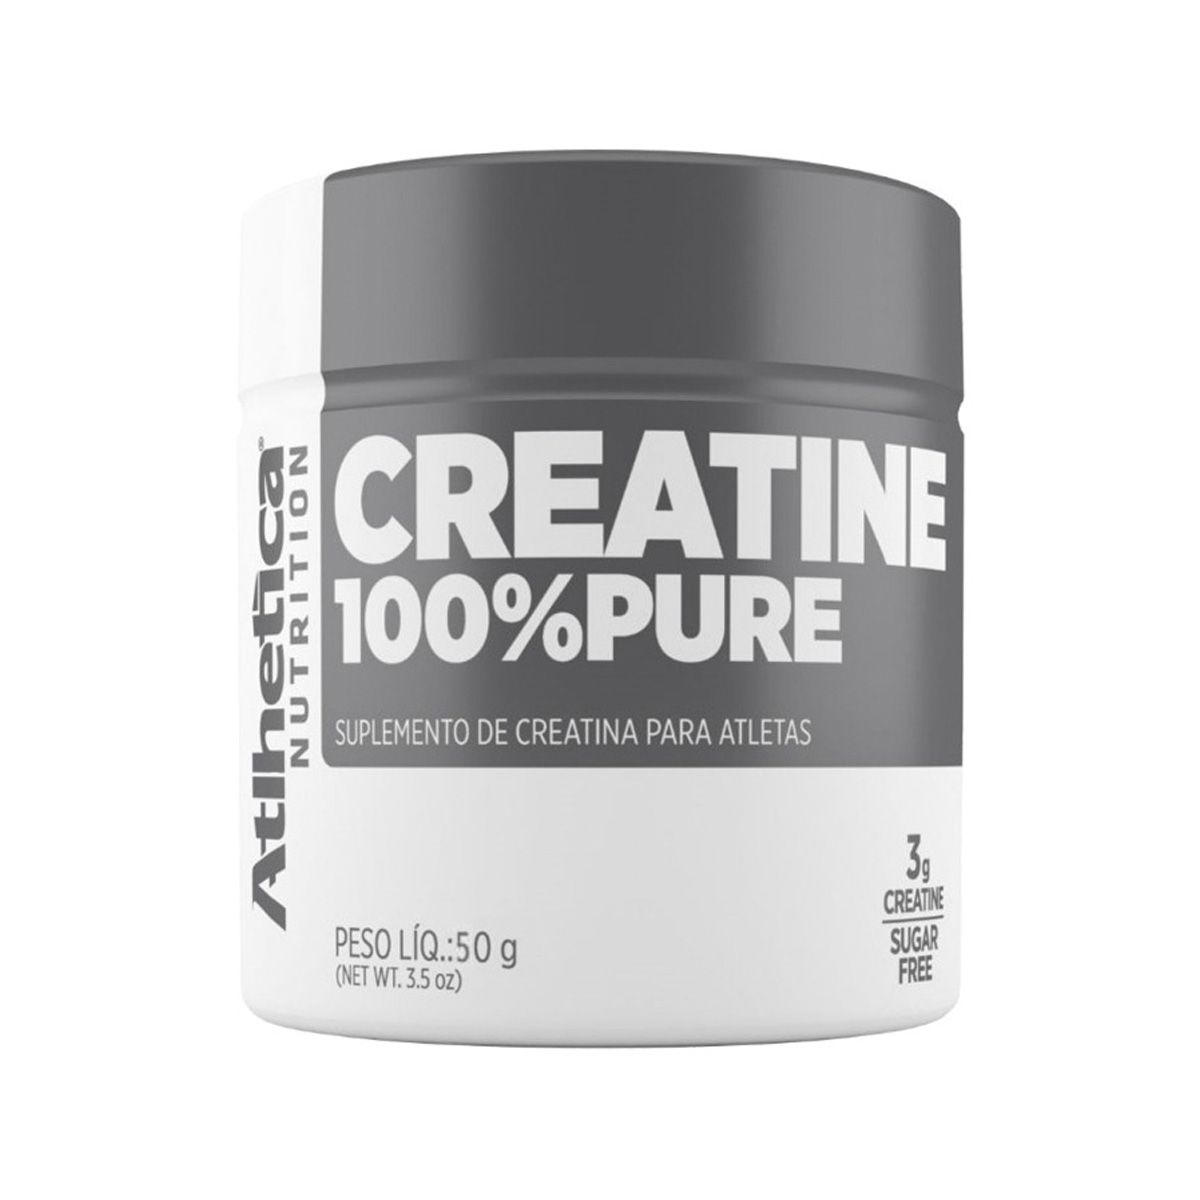 Creatine 100% Pure - 50g - Atlhetica Nutrition